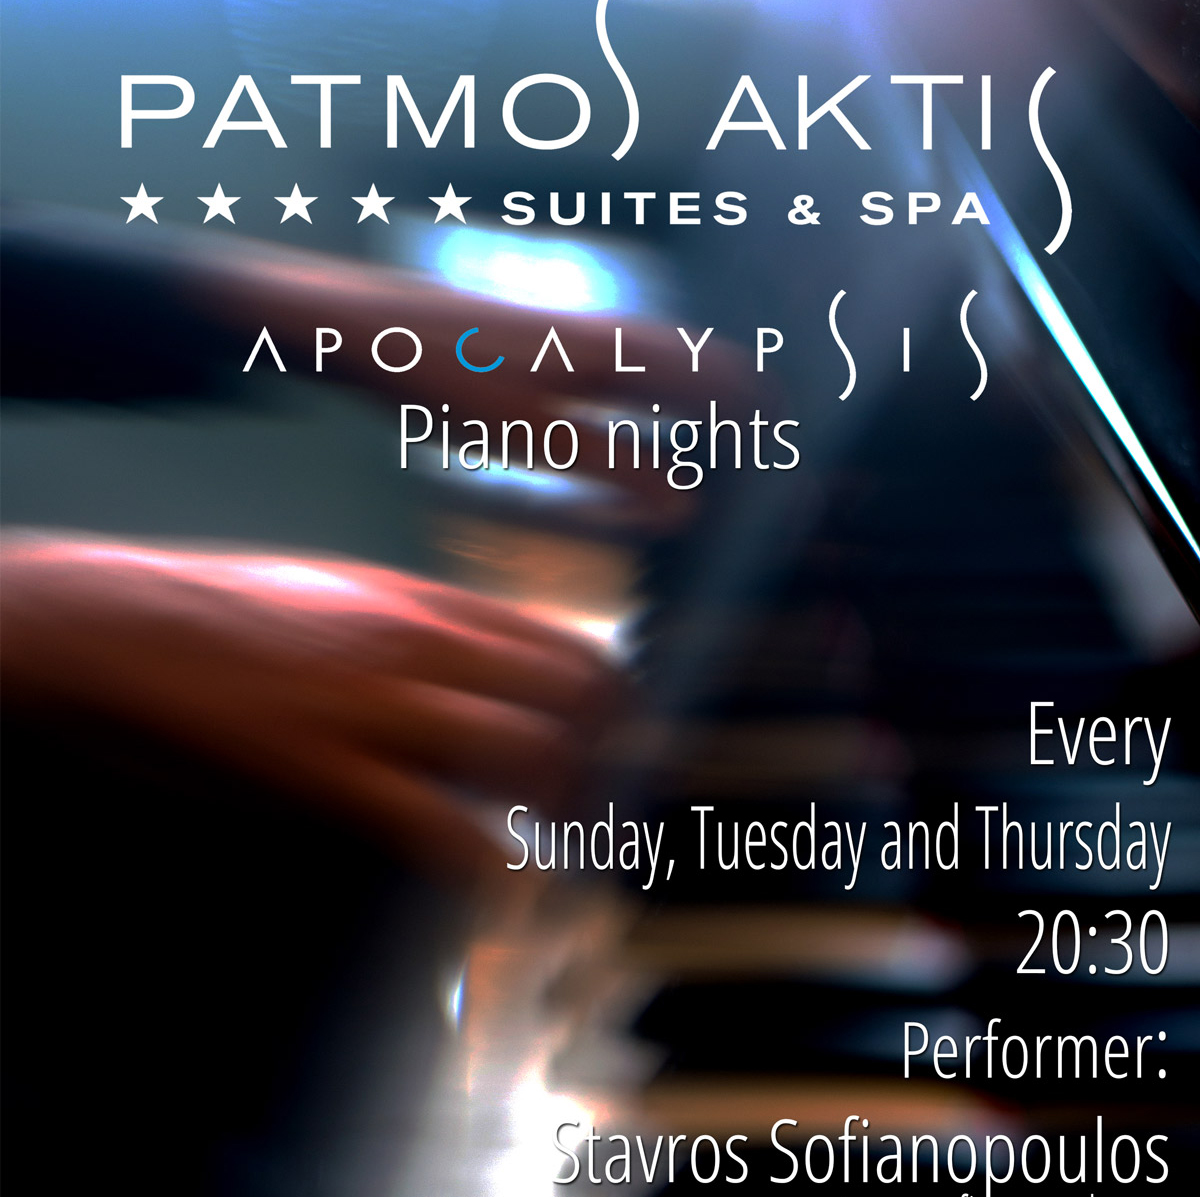 Summer 2017 Patmos Aktis Piano Nights